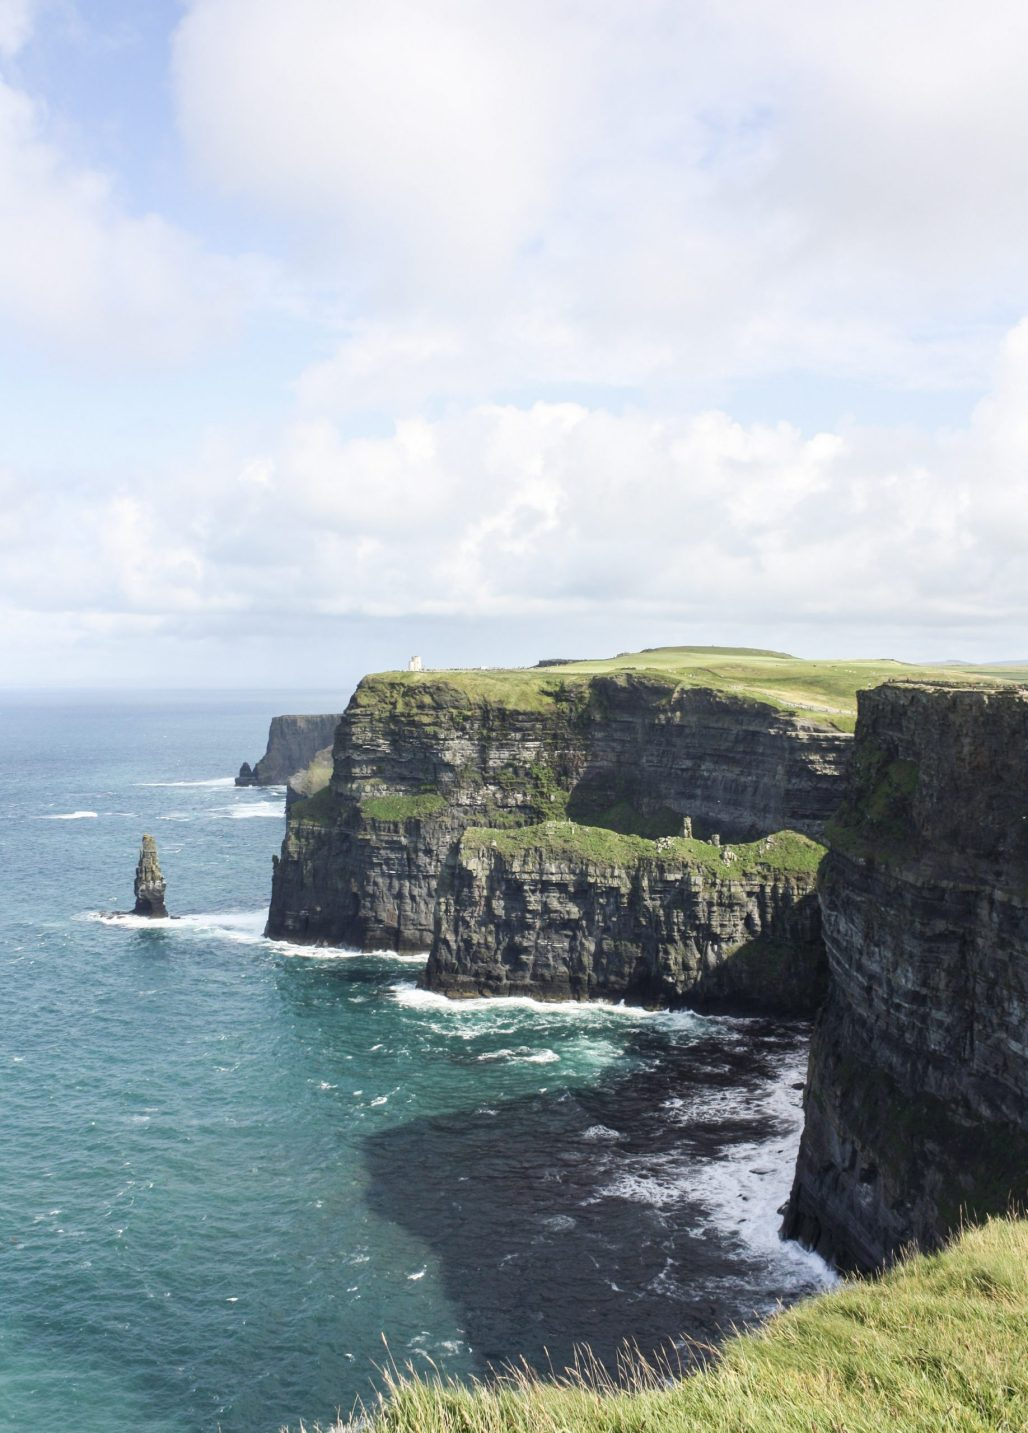 The Majestic Cliffs of Moher